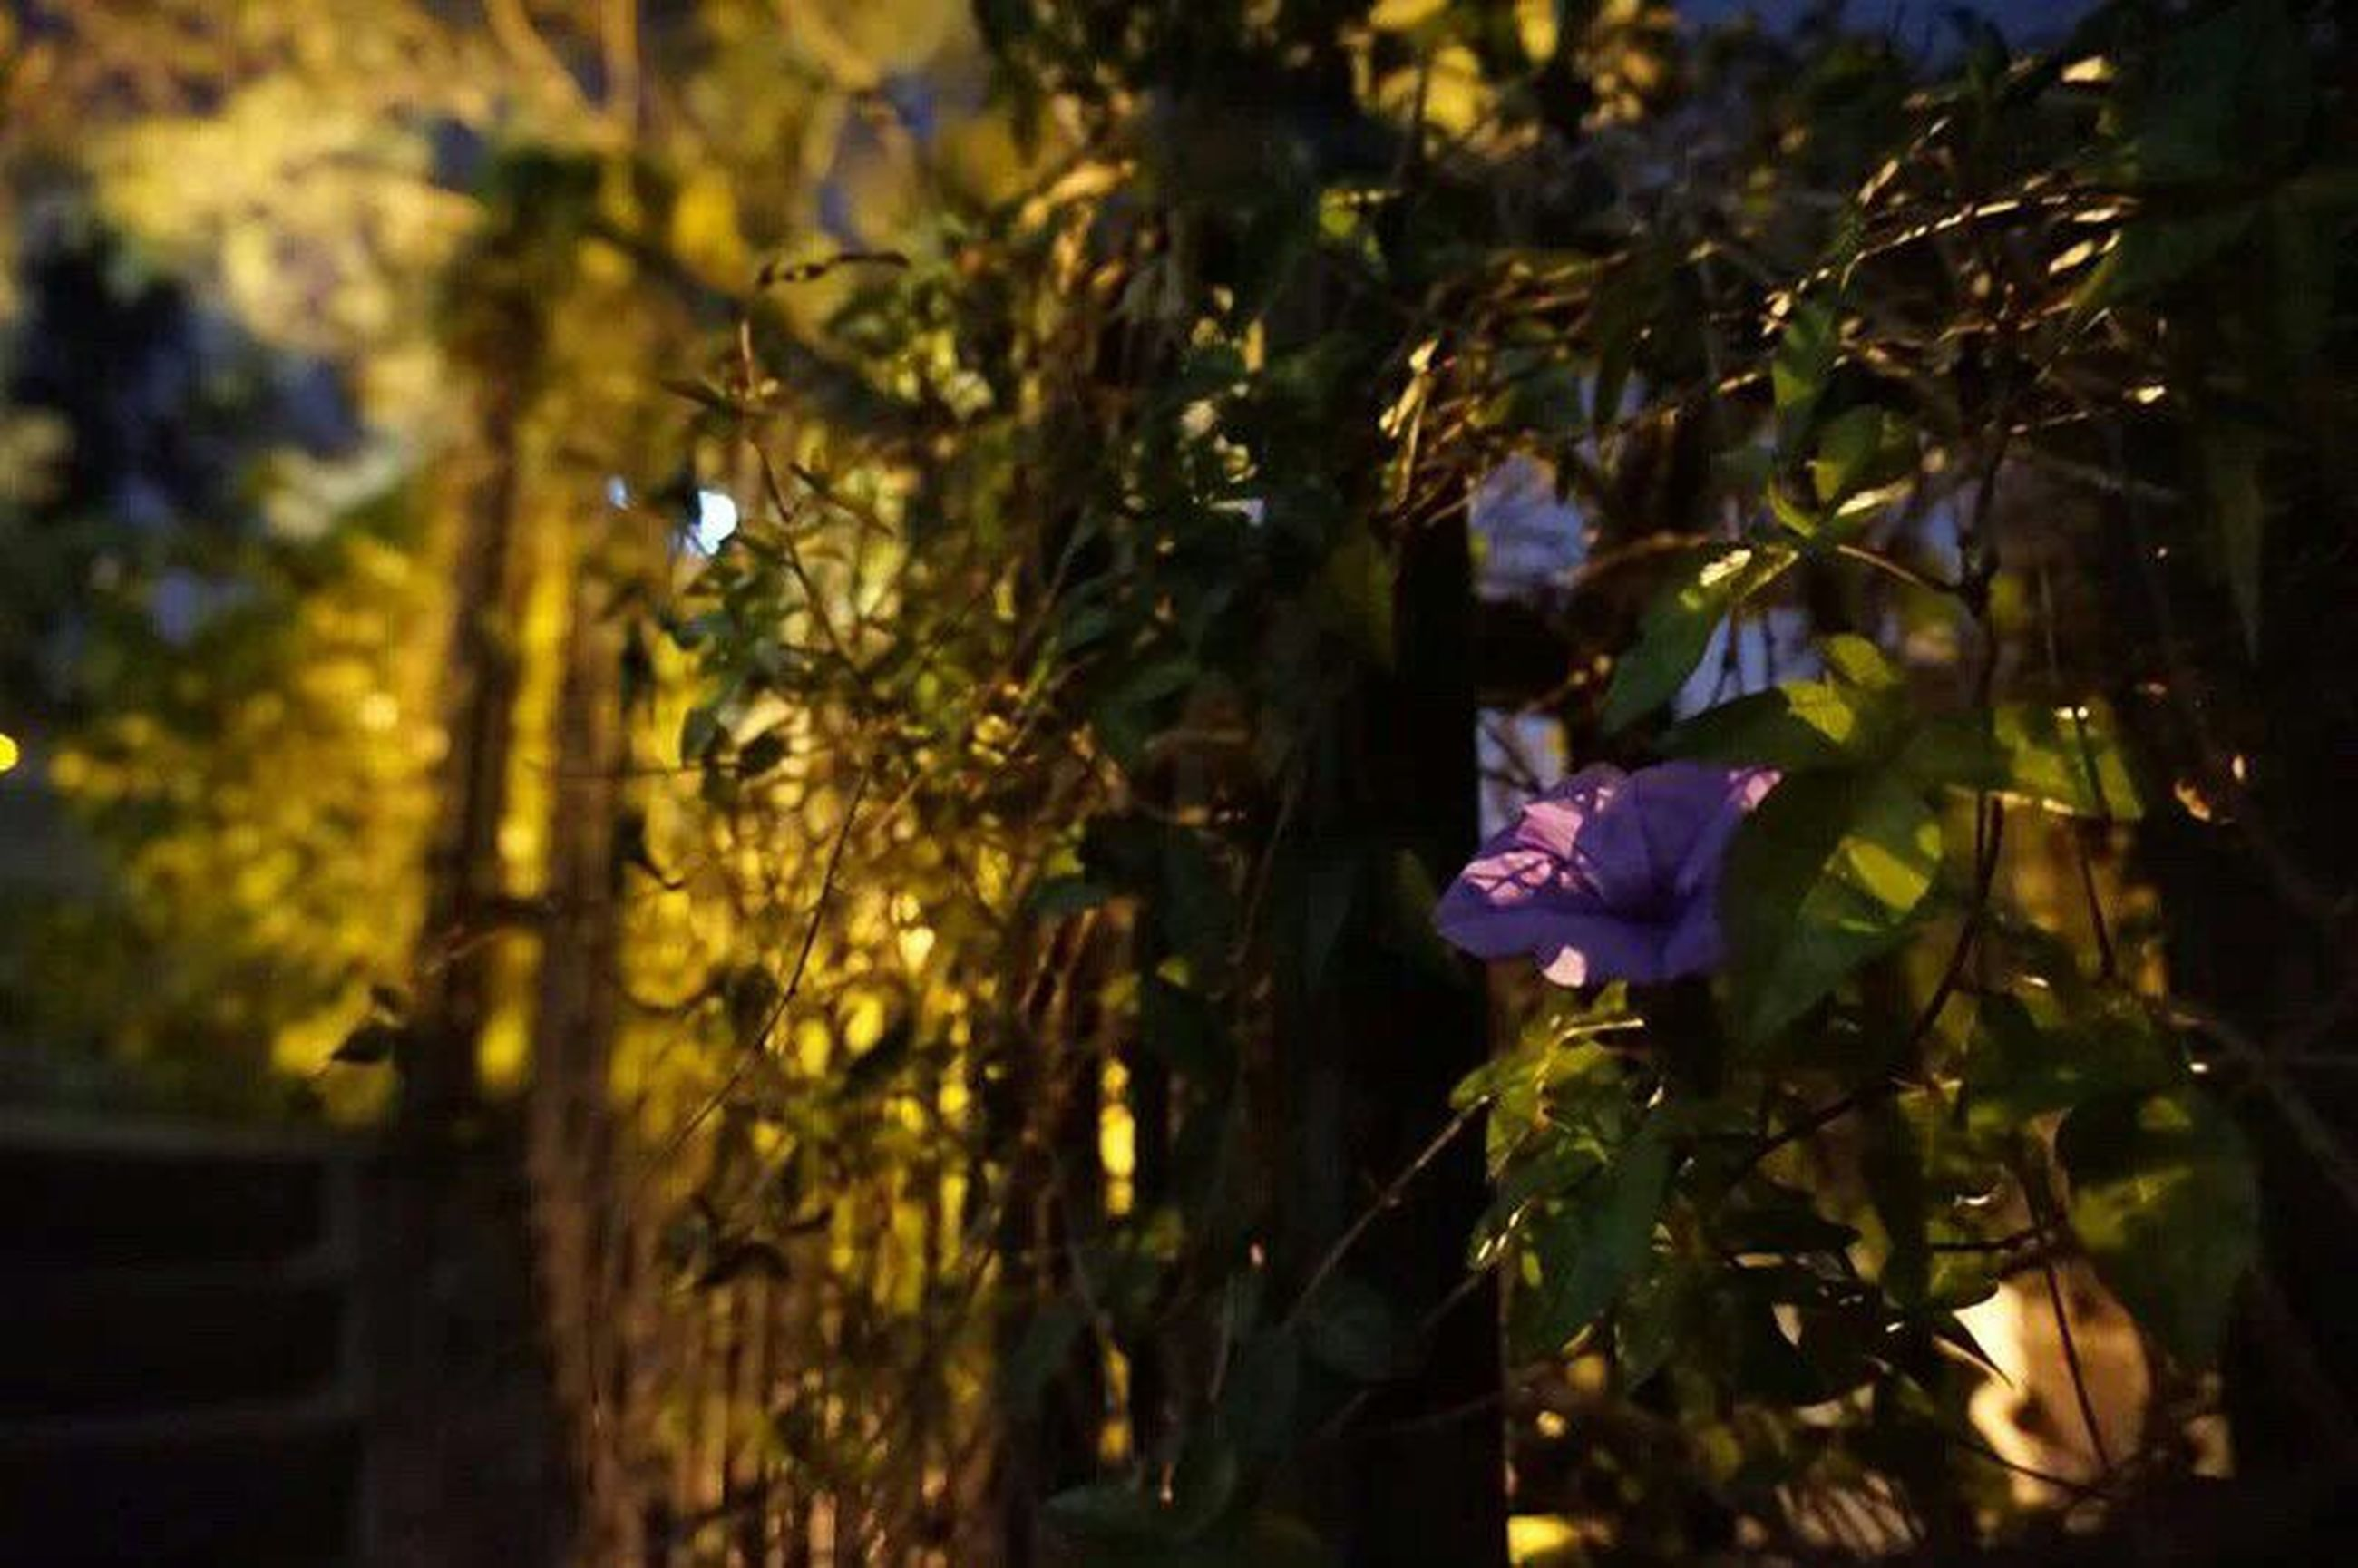 flower, growth, focus on foreground, nature, freshness, plant, beauty in nature, petal, fragility, leaf, tree, close-up, outdoors, day, selective focus, sunlight, park - man made space, blooming, purple, yellow